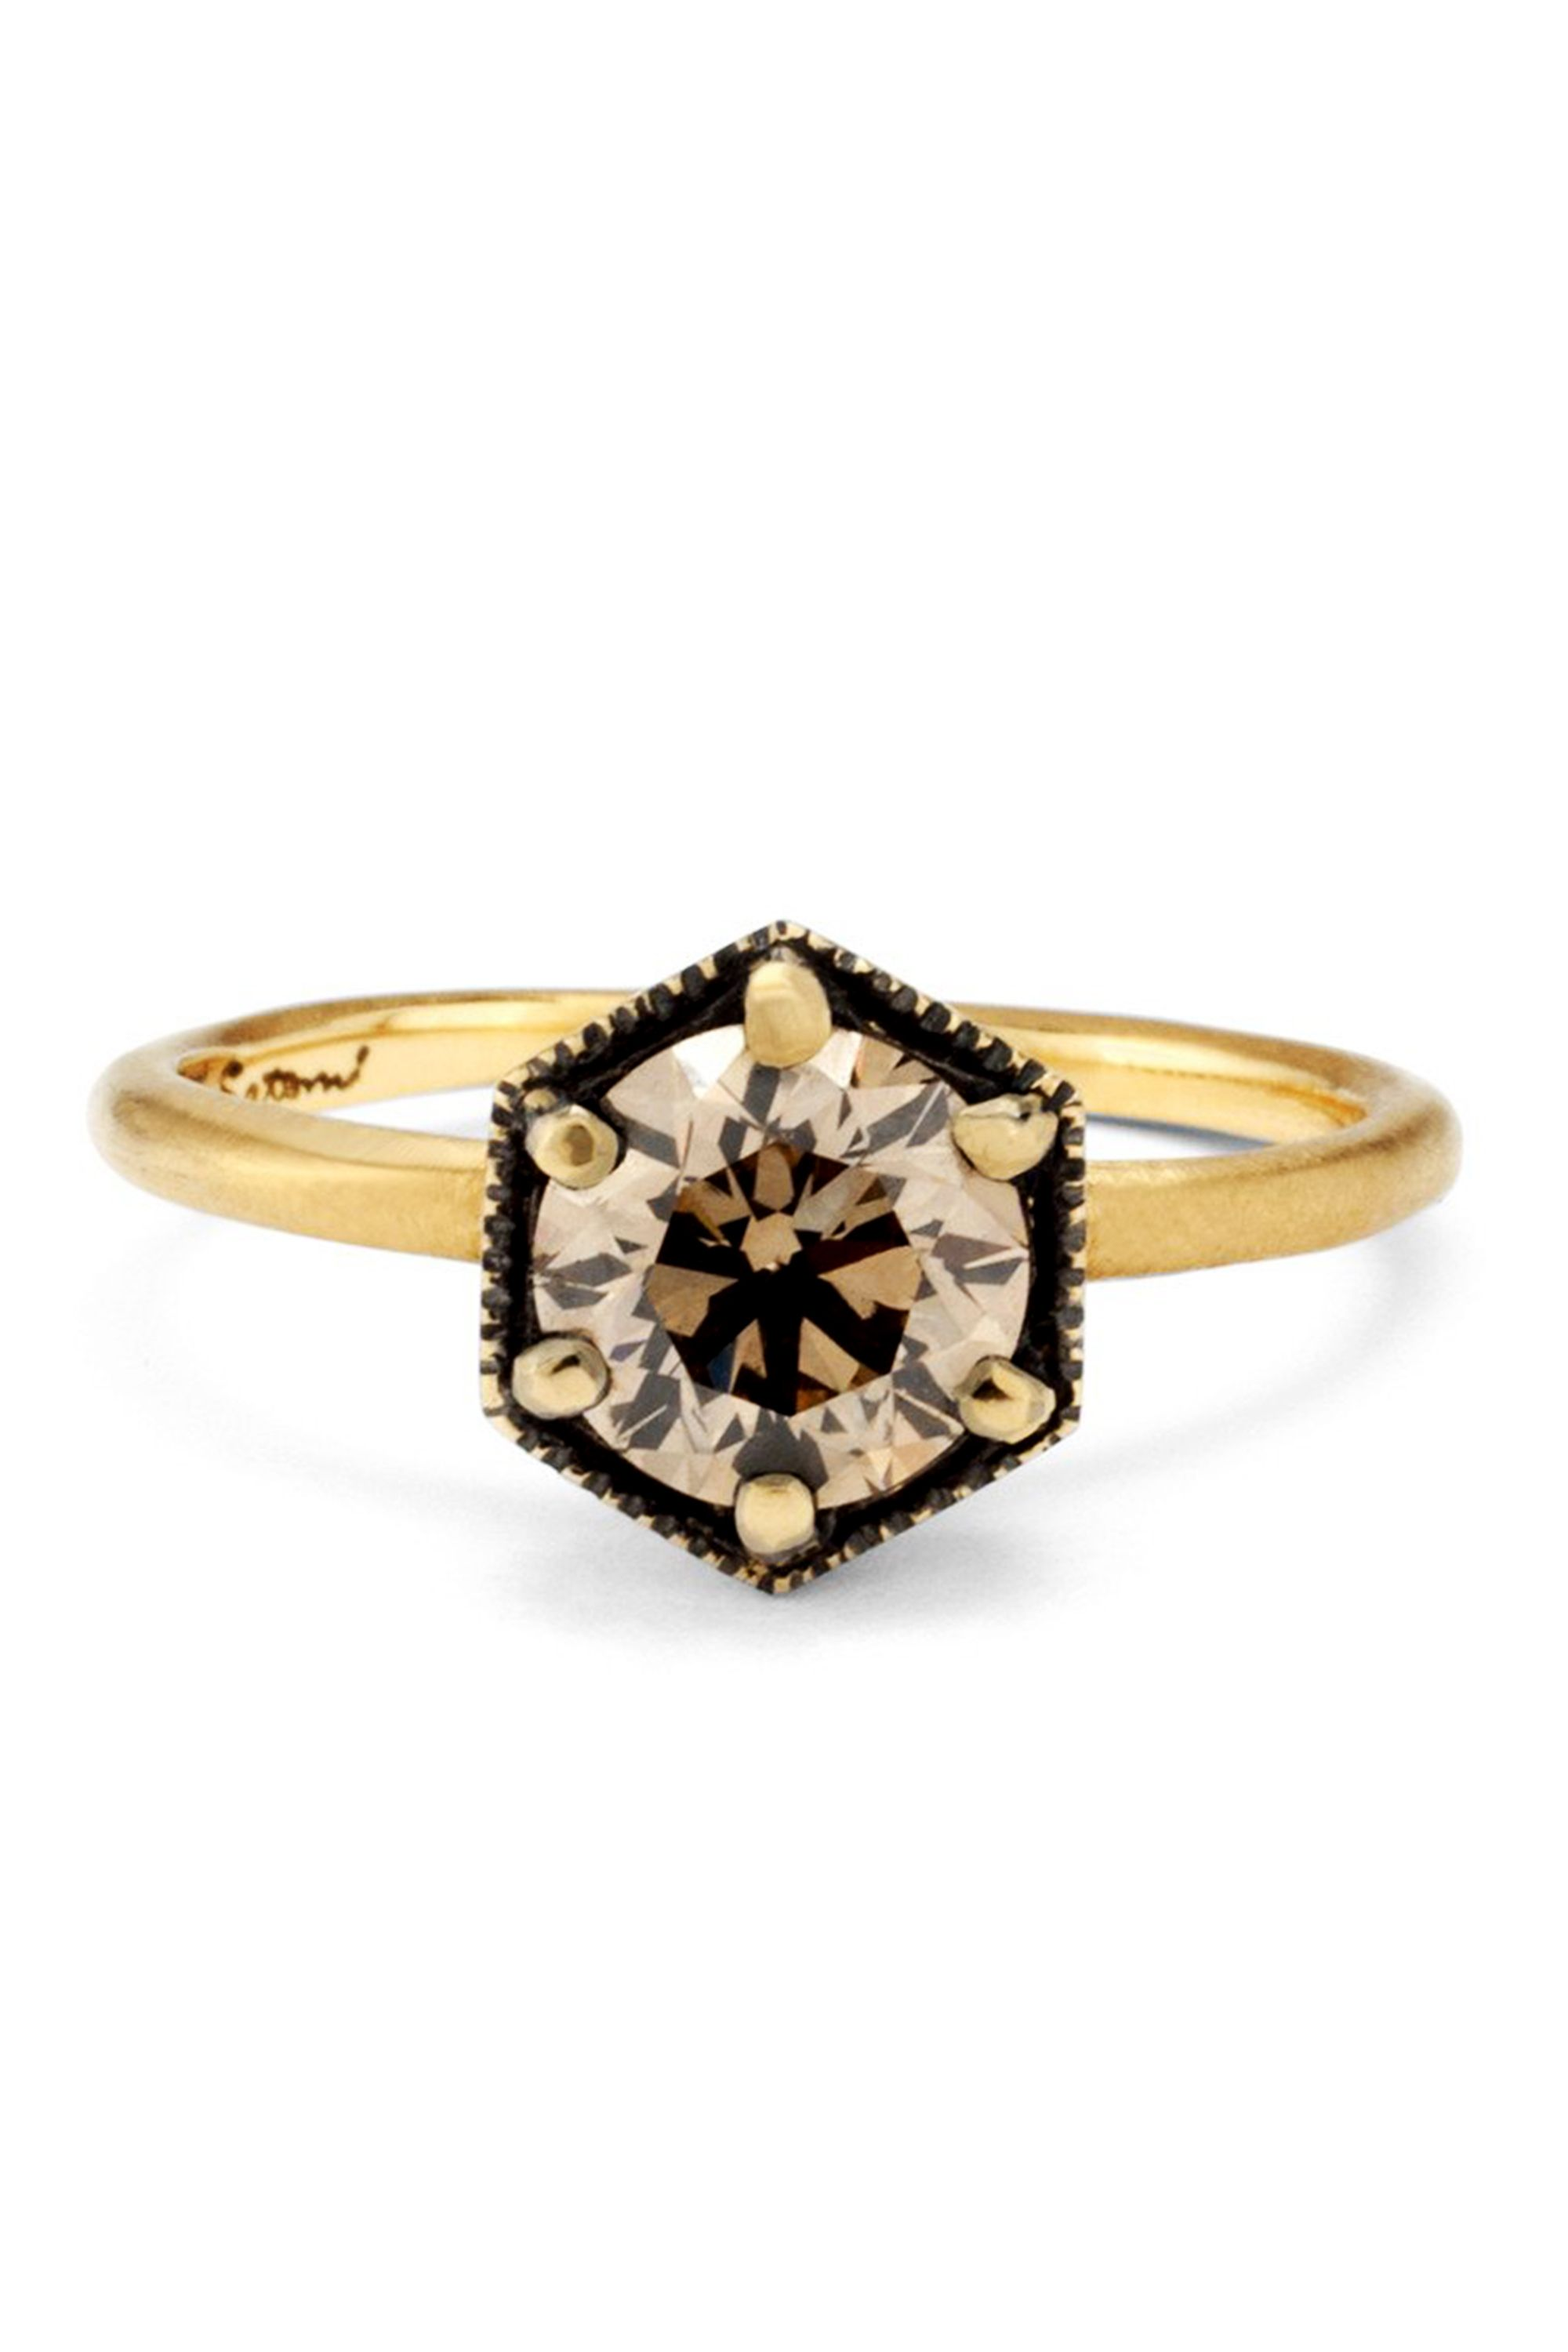 unique gavin brian love collection garvin engagement martha by diamonds stewart you rose in cool ll rings vert weddings gold